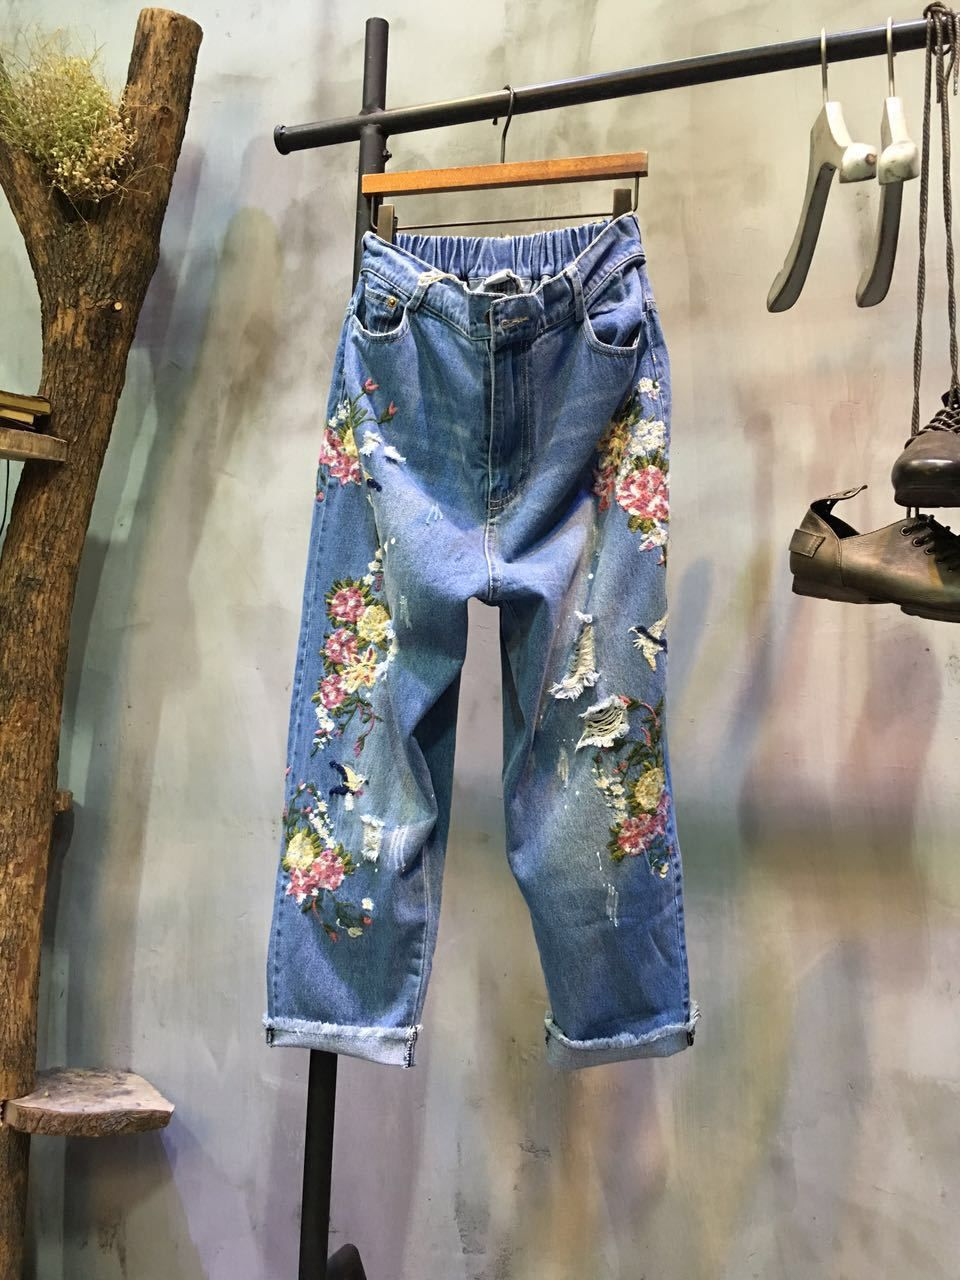 Fashion Flowers Embroidered Jeans Designers Ripped Jeans    #jeans #denim #blue #embroidered #pants #trousers #ripped #designer #custom #bottoms #fashion